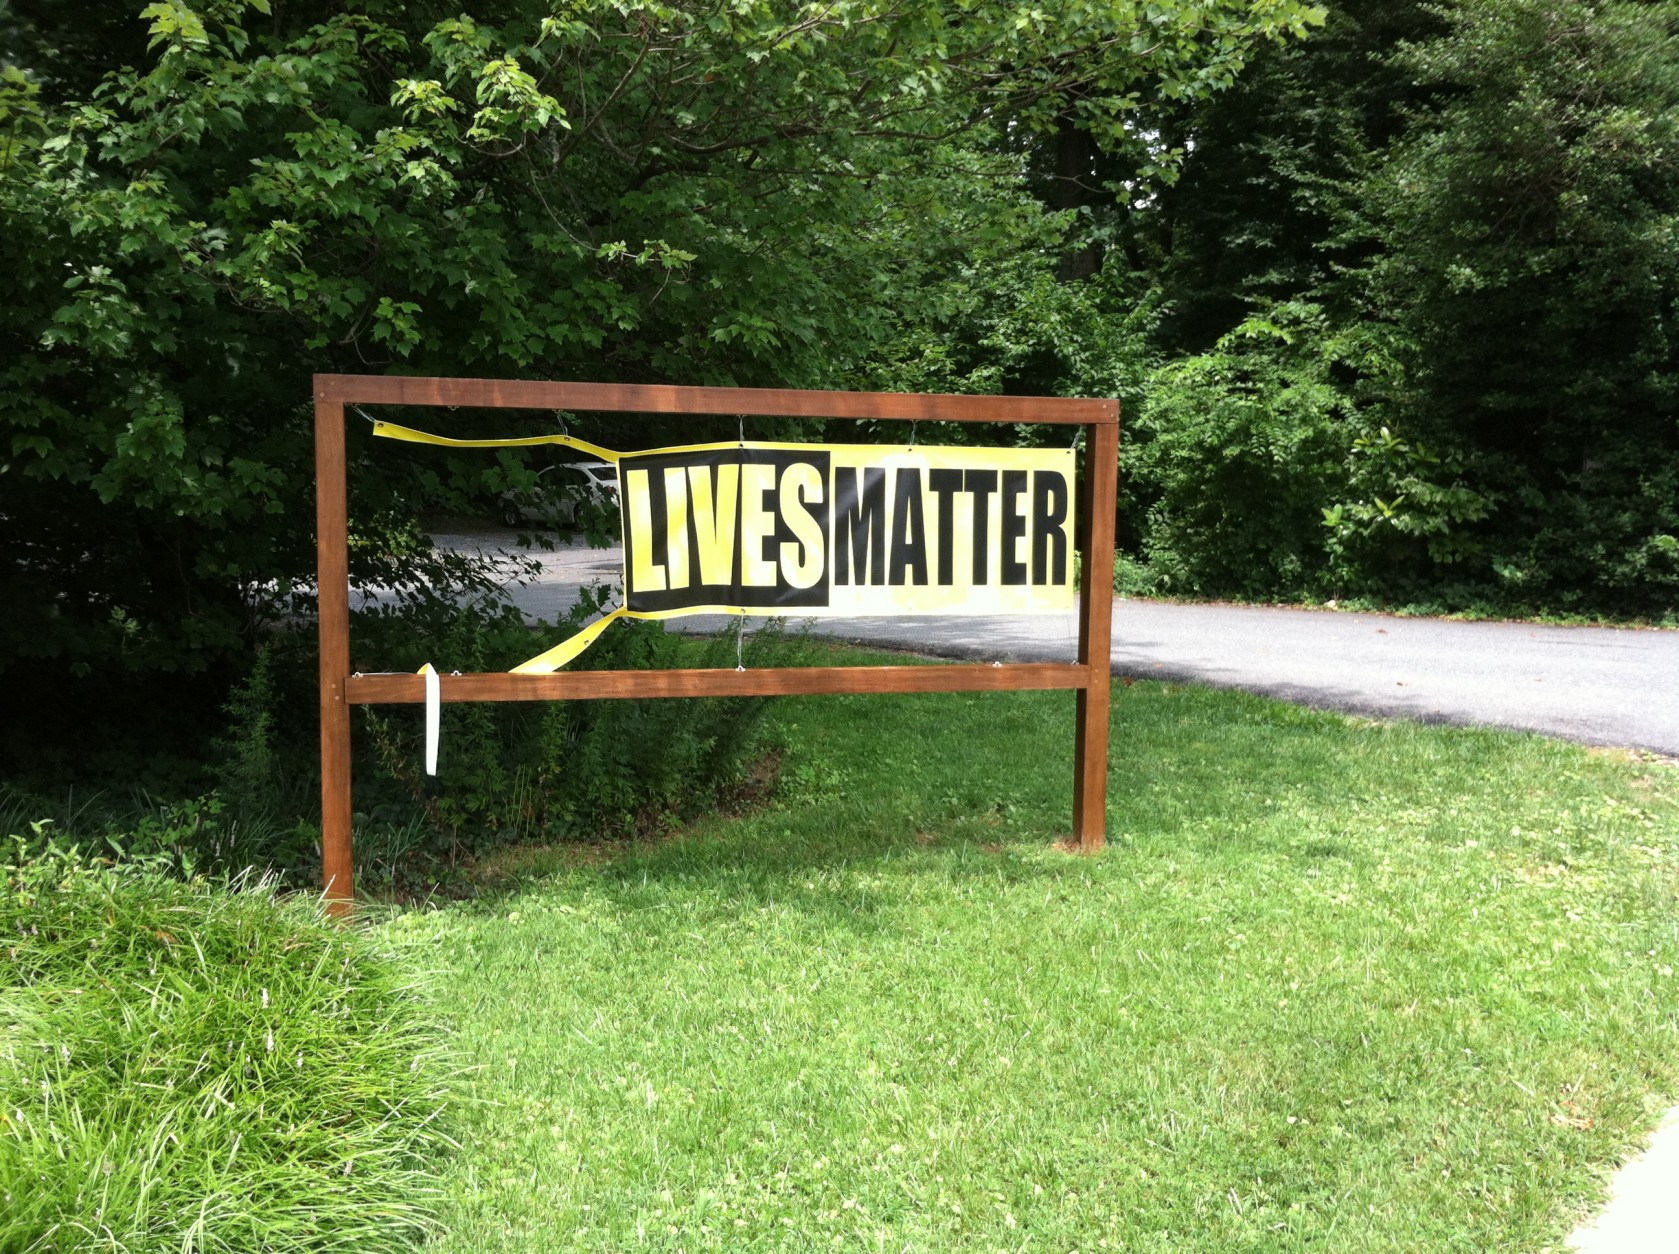 """The """"black lives matter"""" sign that was vandalized. (Courtesy Ana Maria K. Lim)"""